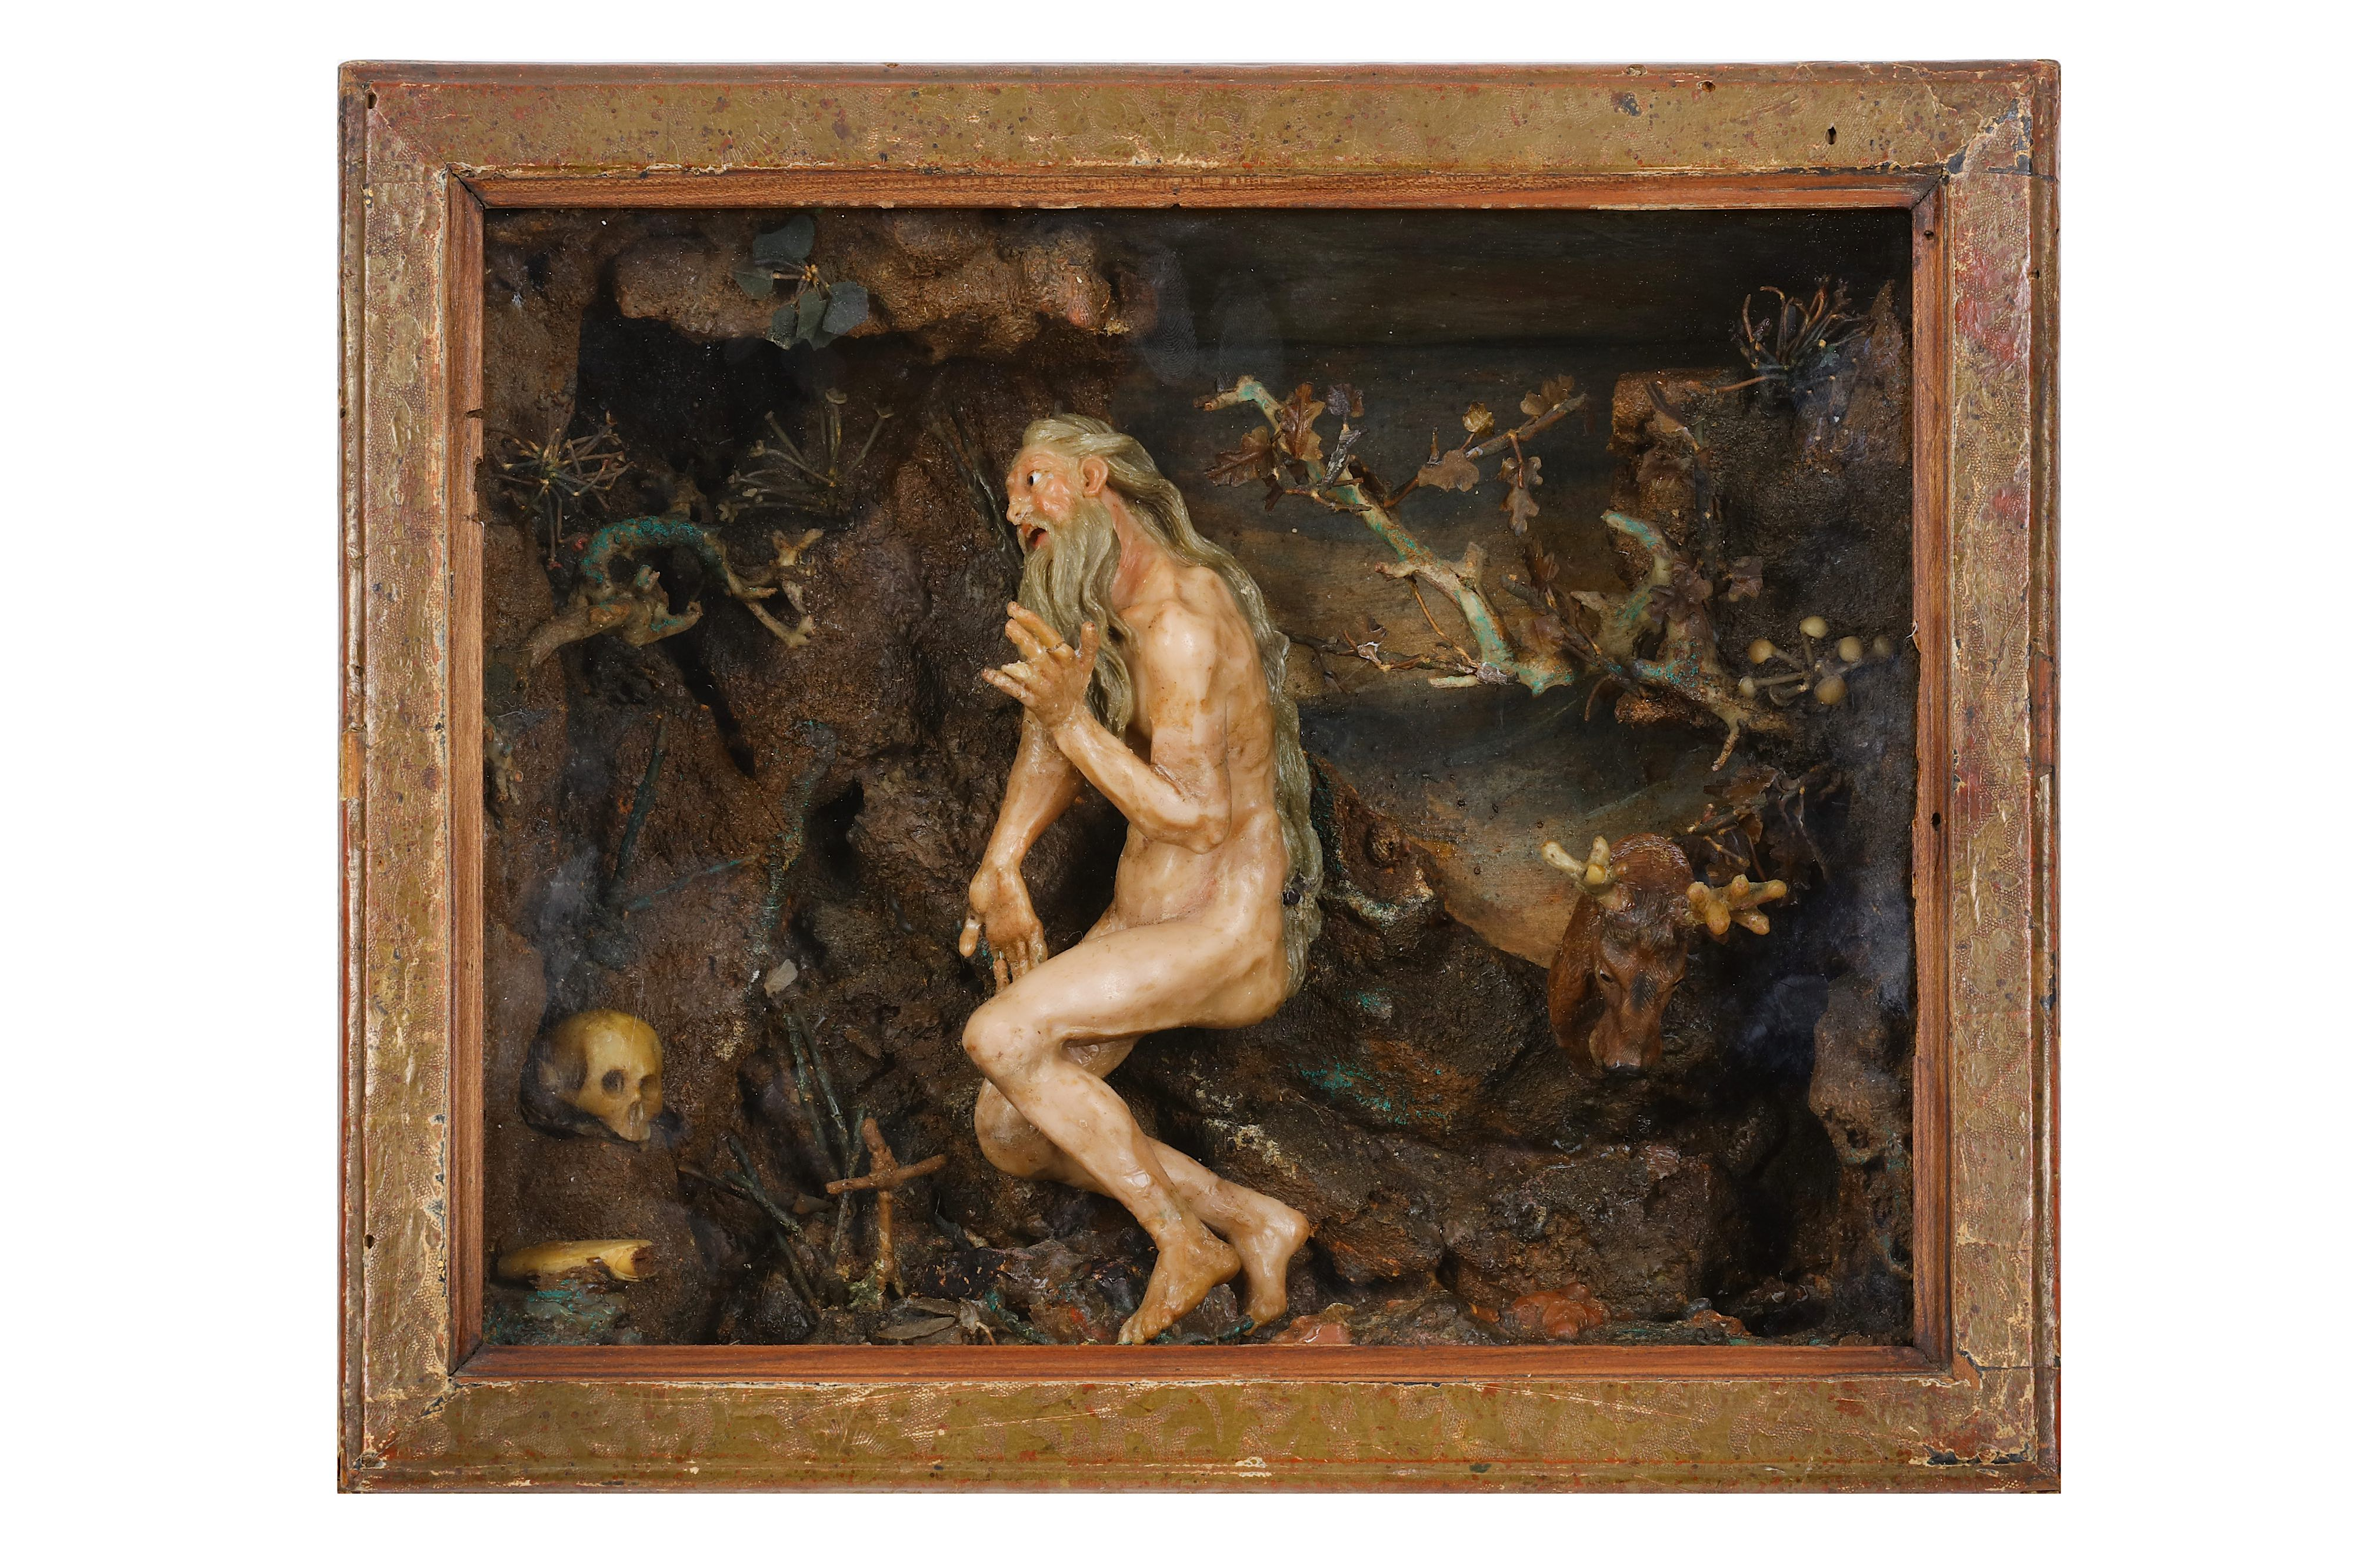 Lot 30 - ATTRIBUTED TO CATERINA DE JULIANIS (ITALIAN, 1670-1742): ST JEROME IN THE WILDERNESS